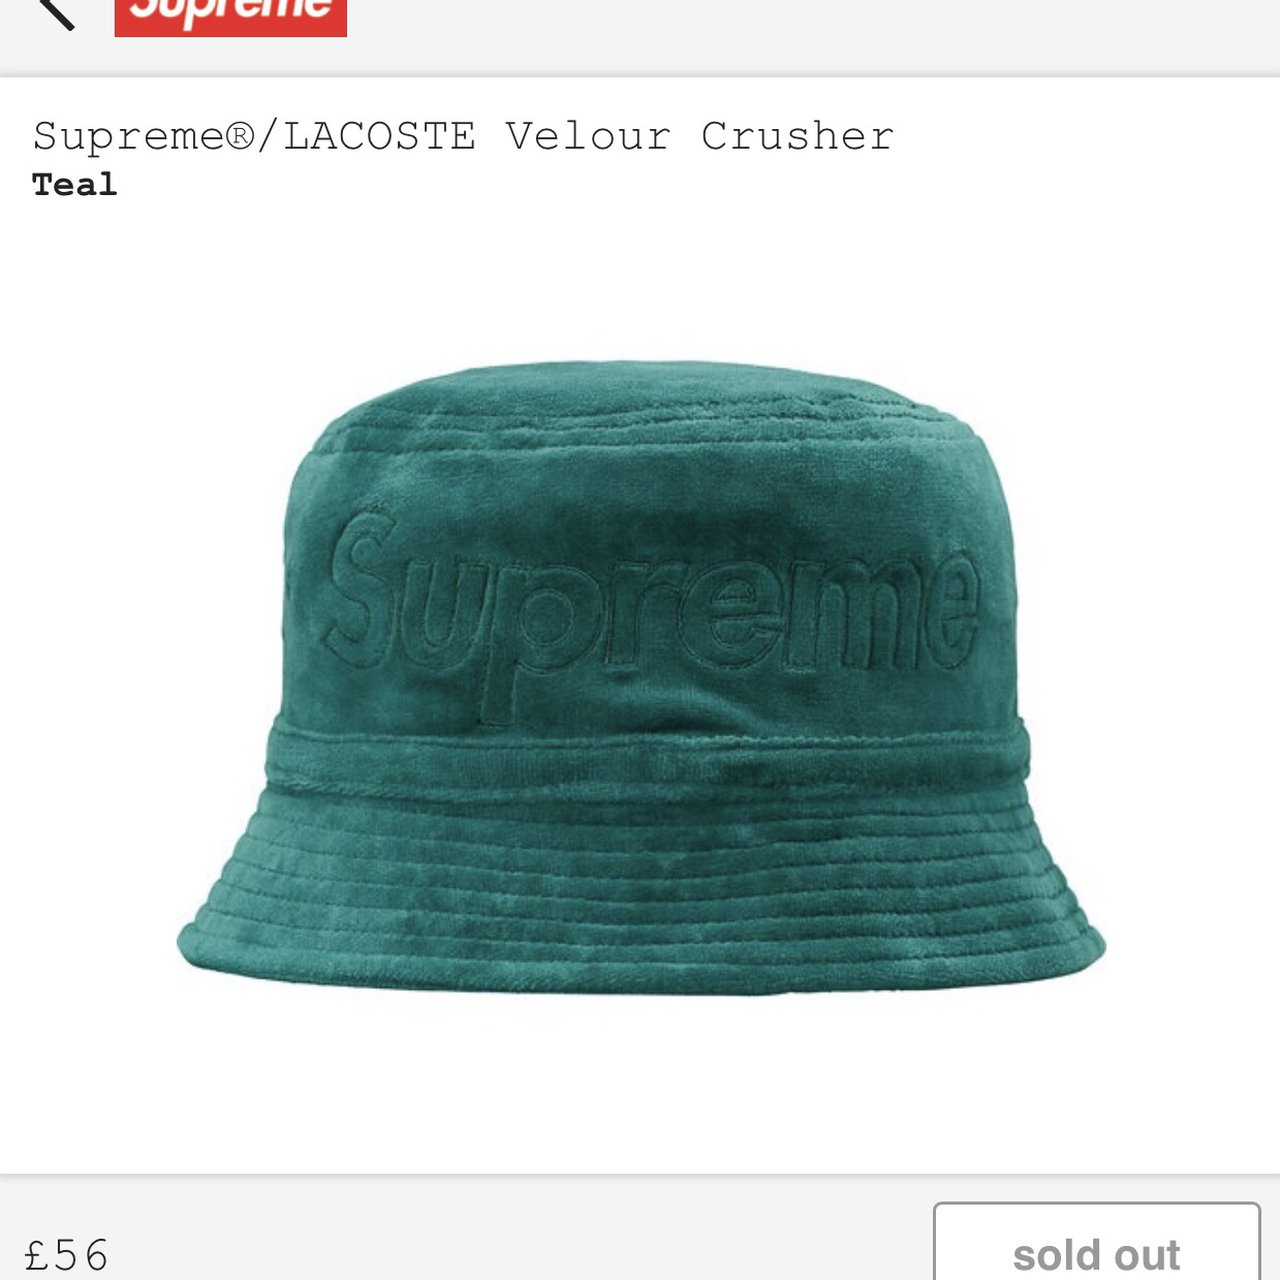 Supreme Lacoste Green Bucket Hat - M L Sold Out immediately - Depop 404c9419f089